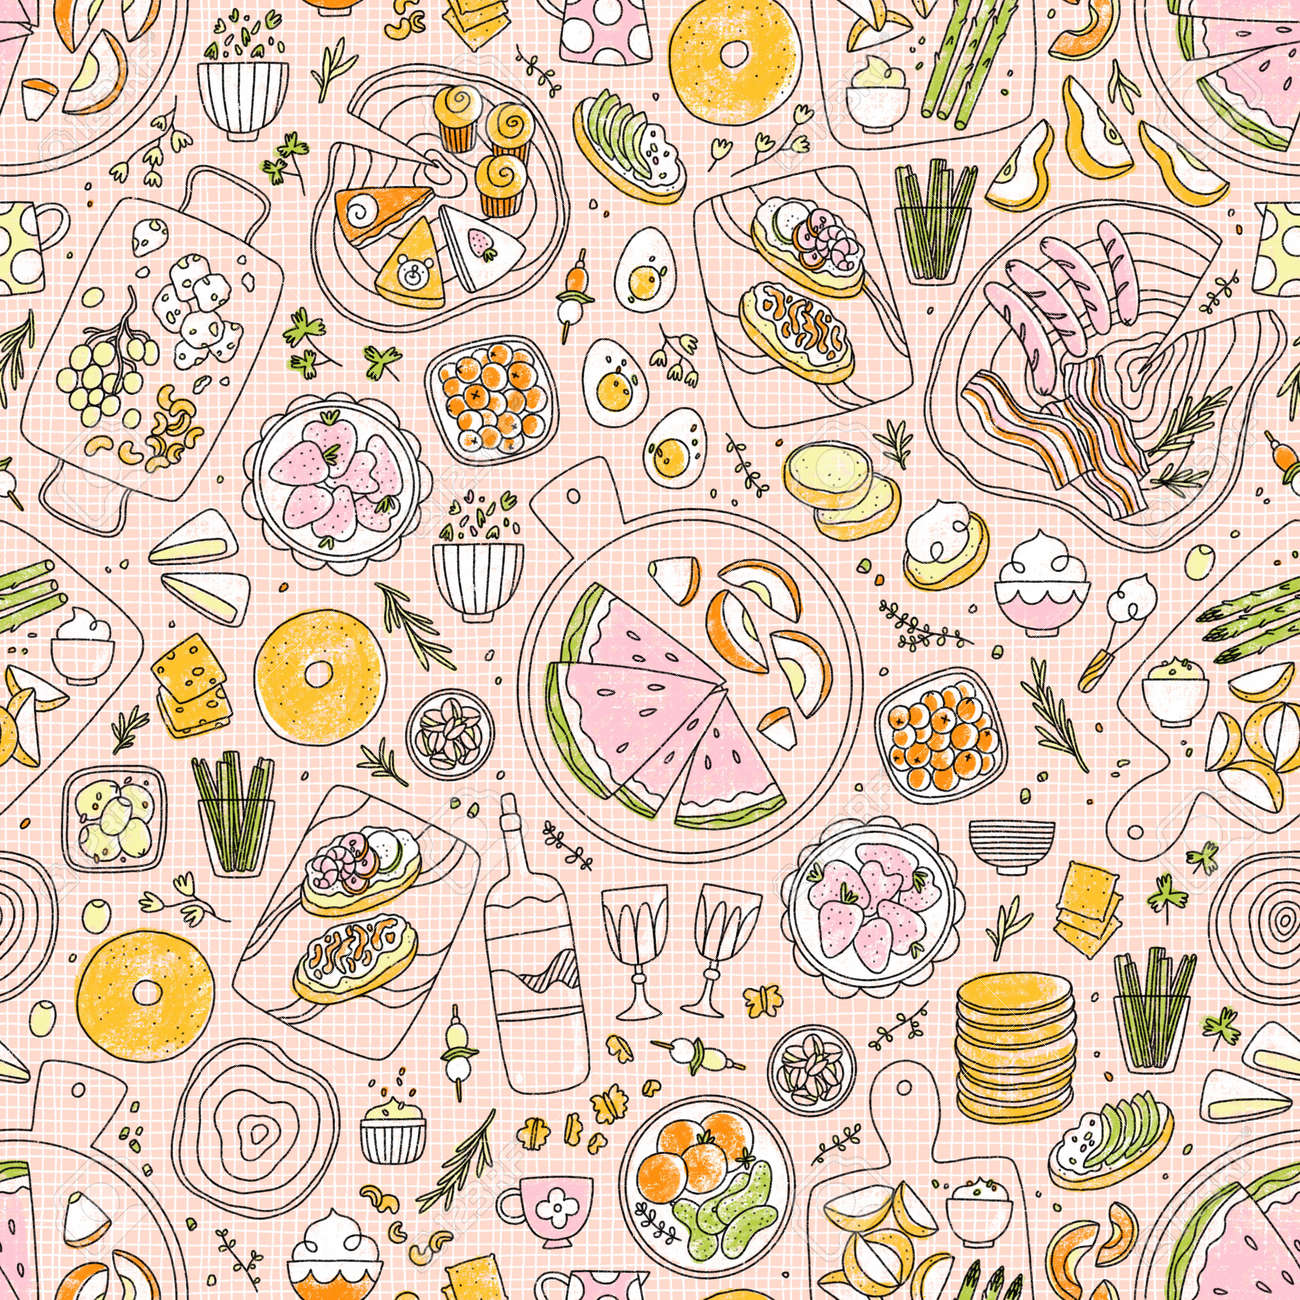 Modern charcuterie table with fruits, vegetables, different kinds of cheese, seamless pattern illustration, line art - 170268201